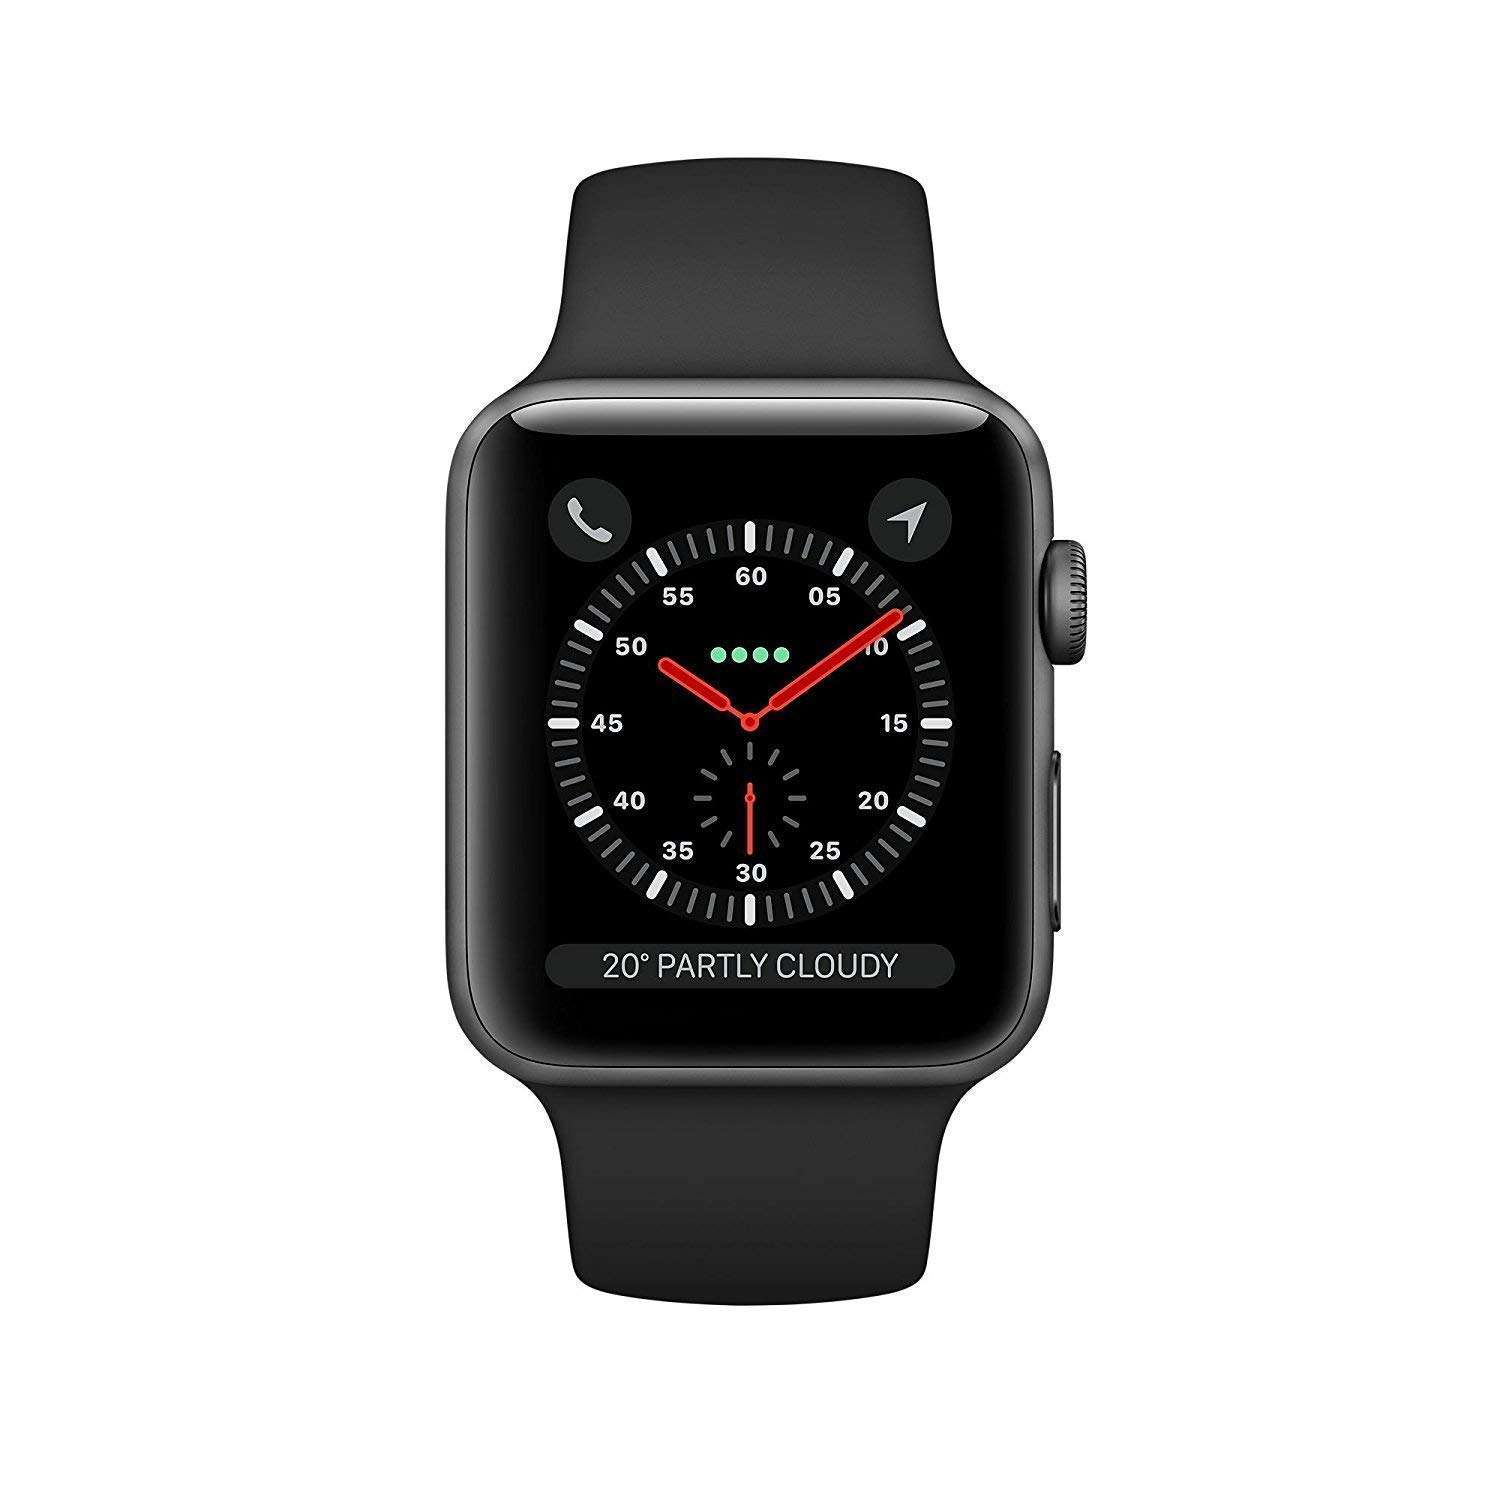 Apple-Watch-38mm-Series-3-GPS-Only-with-Sport-Band-MR352LL-A thumbnail 7